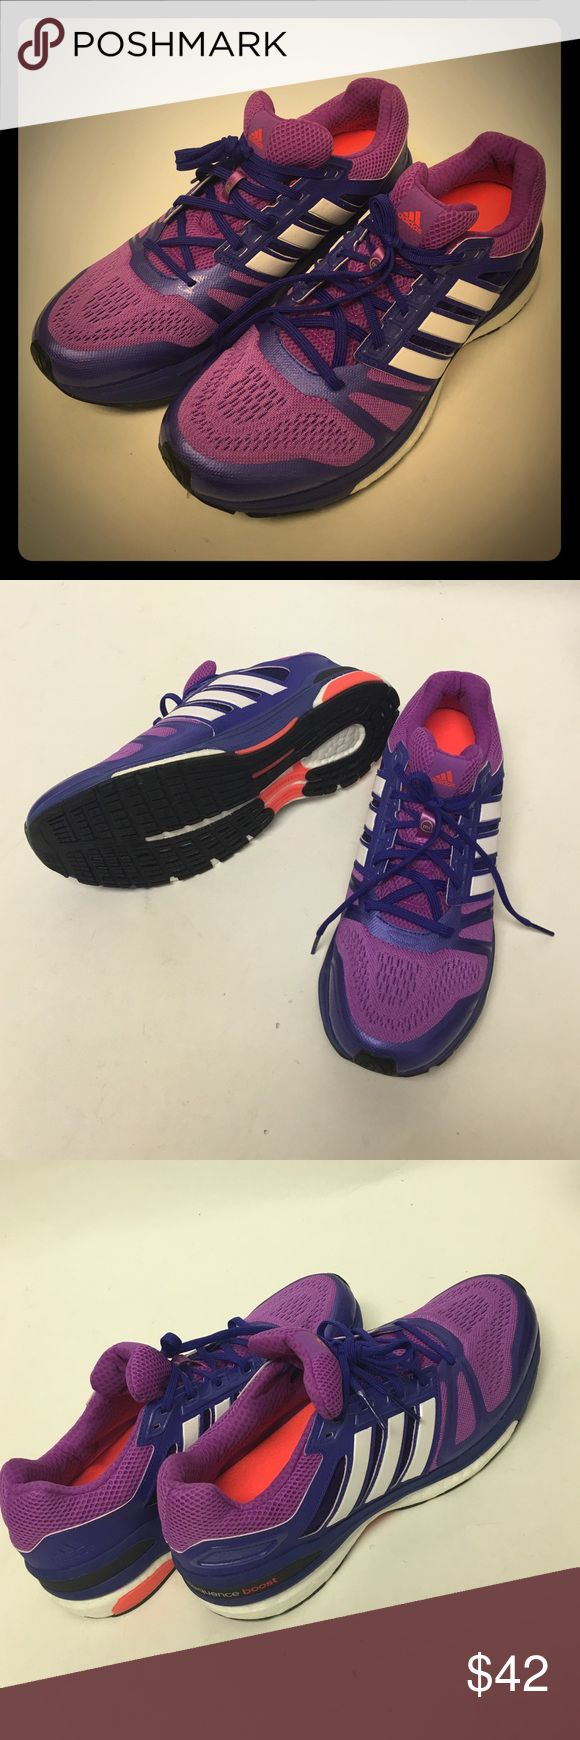 BNOT Adidas Supernova Sequence 7W Running Shoes UPC: 888164862739 SKU LFT10008 Adidas Shoes Athletic Shoes